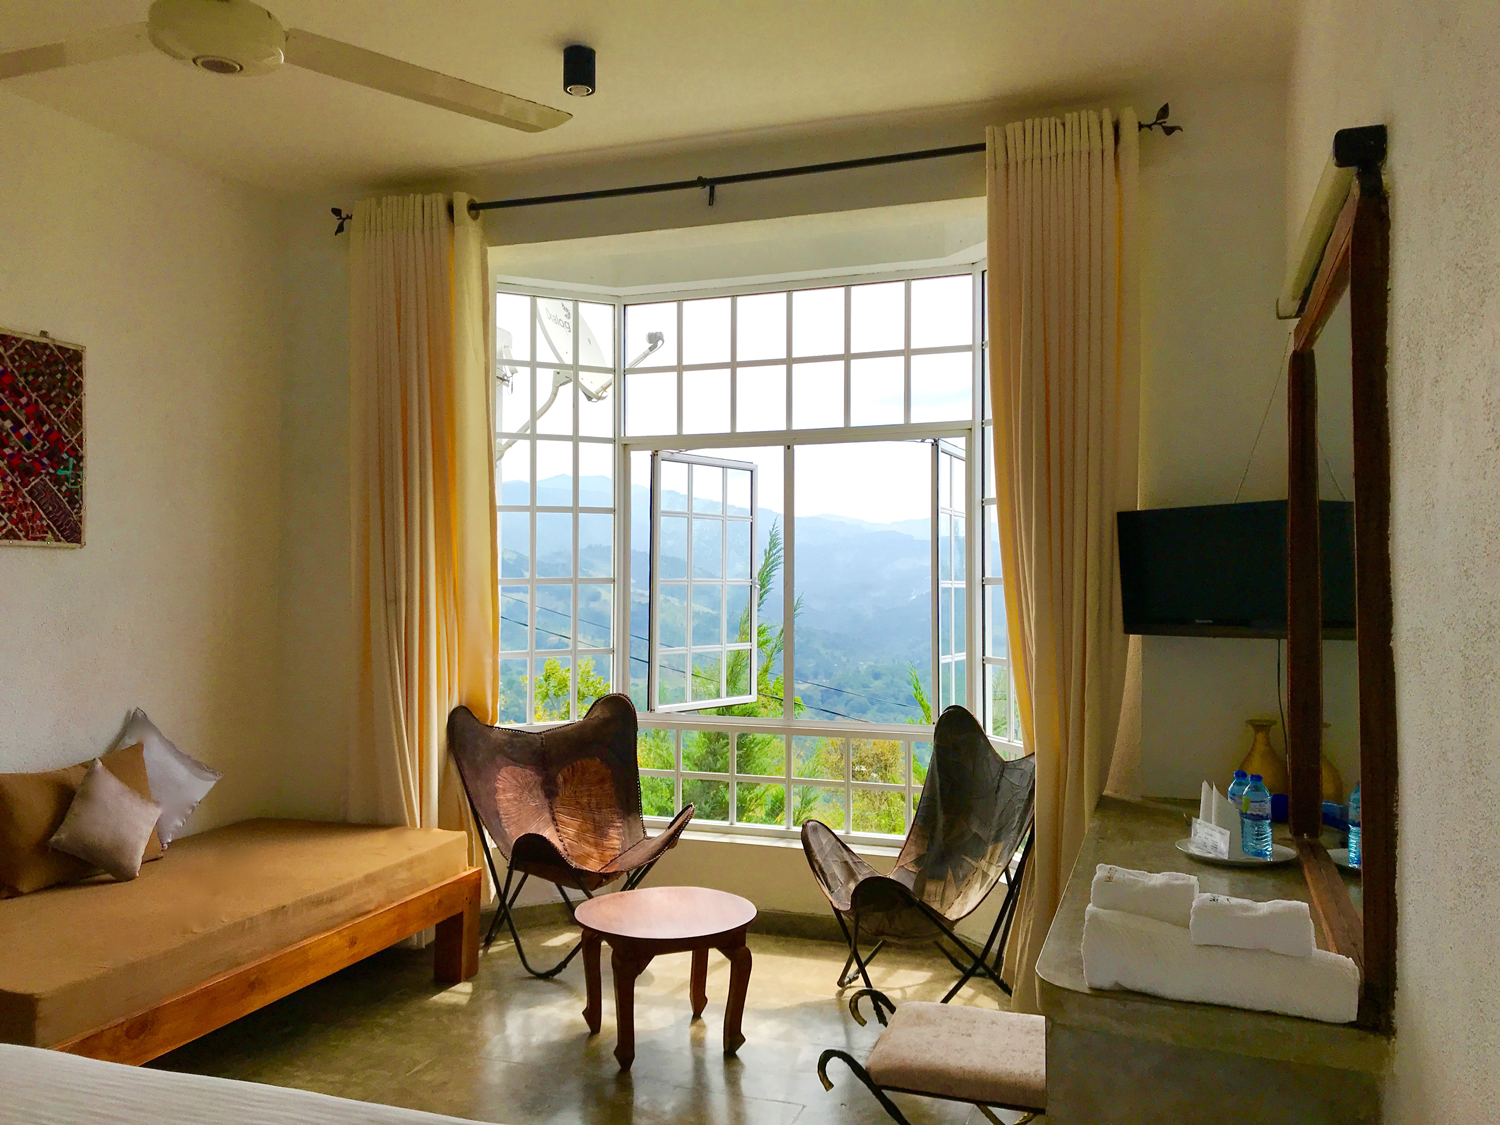 Deluxe room at cub lespri hotel kandy